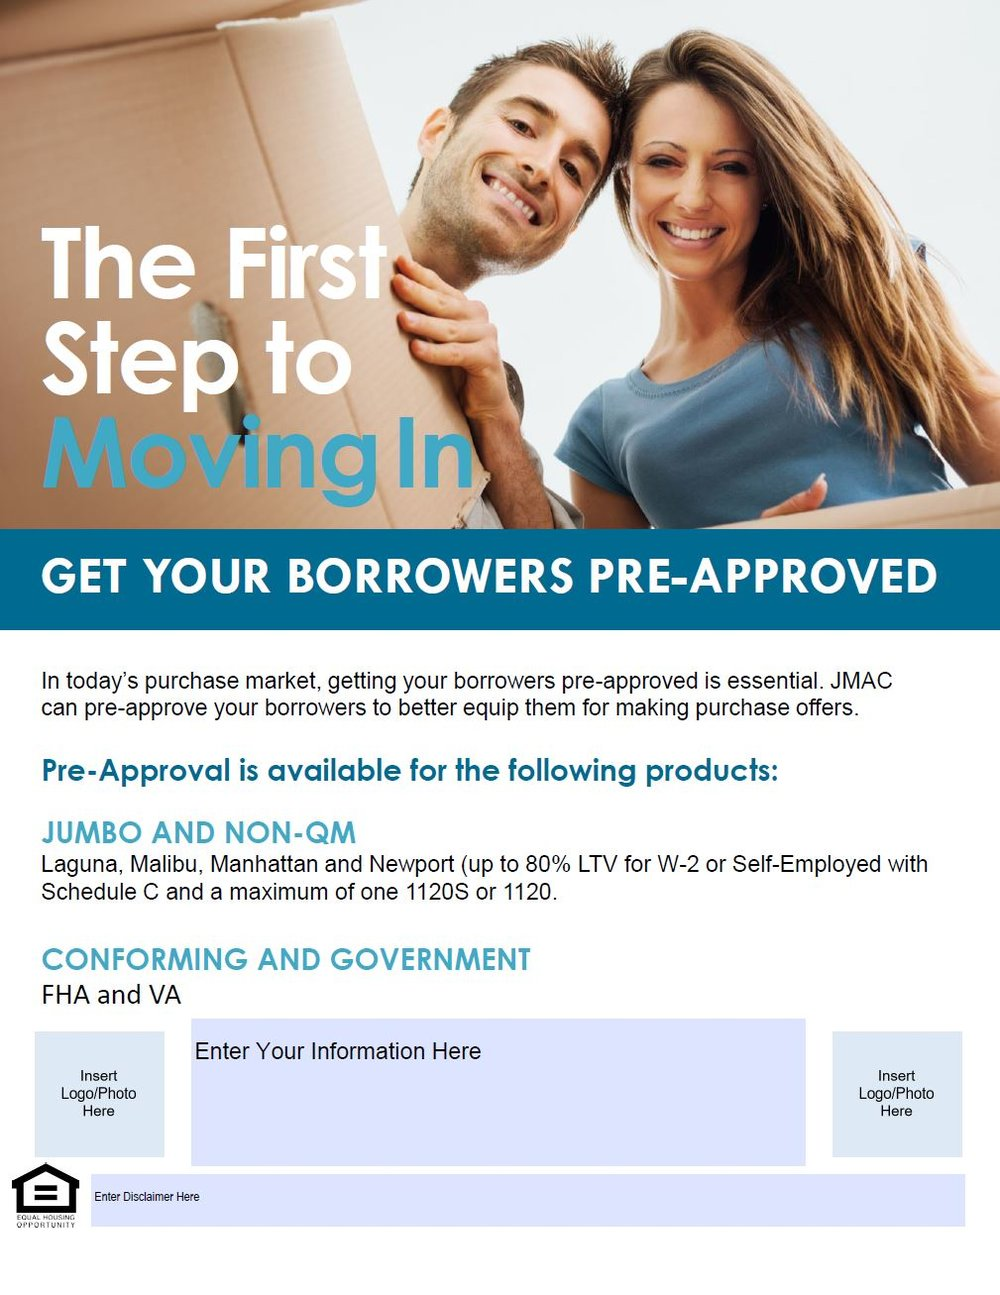 Pre Approval Marketing Flyer 10.18 Broker Fillable.JPG